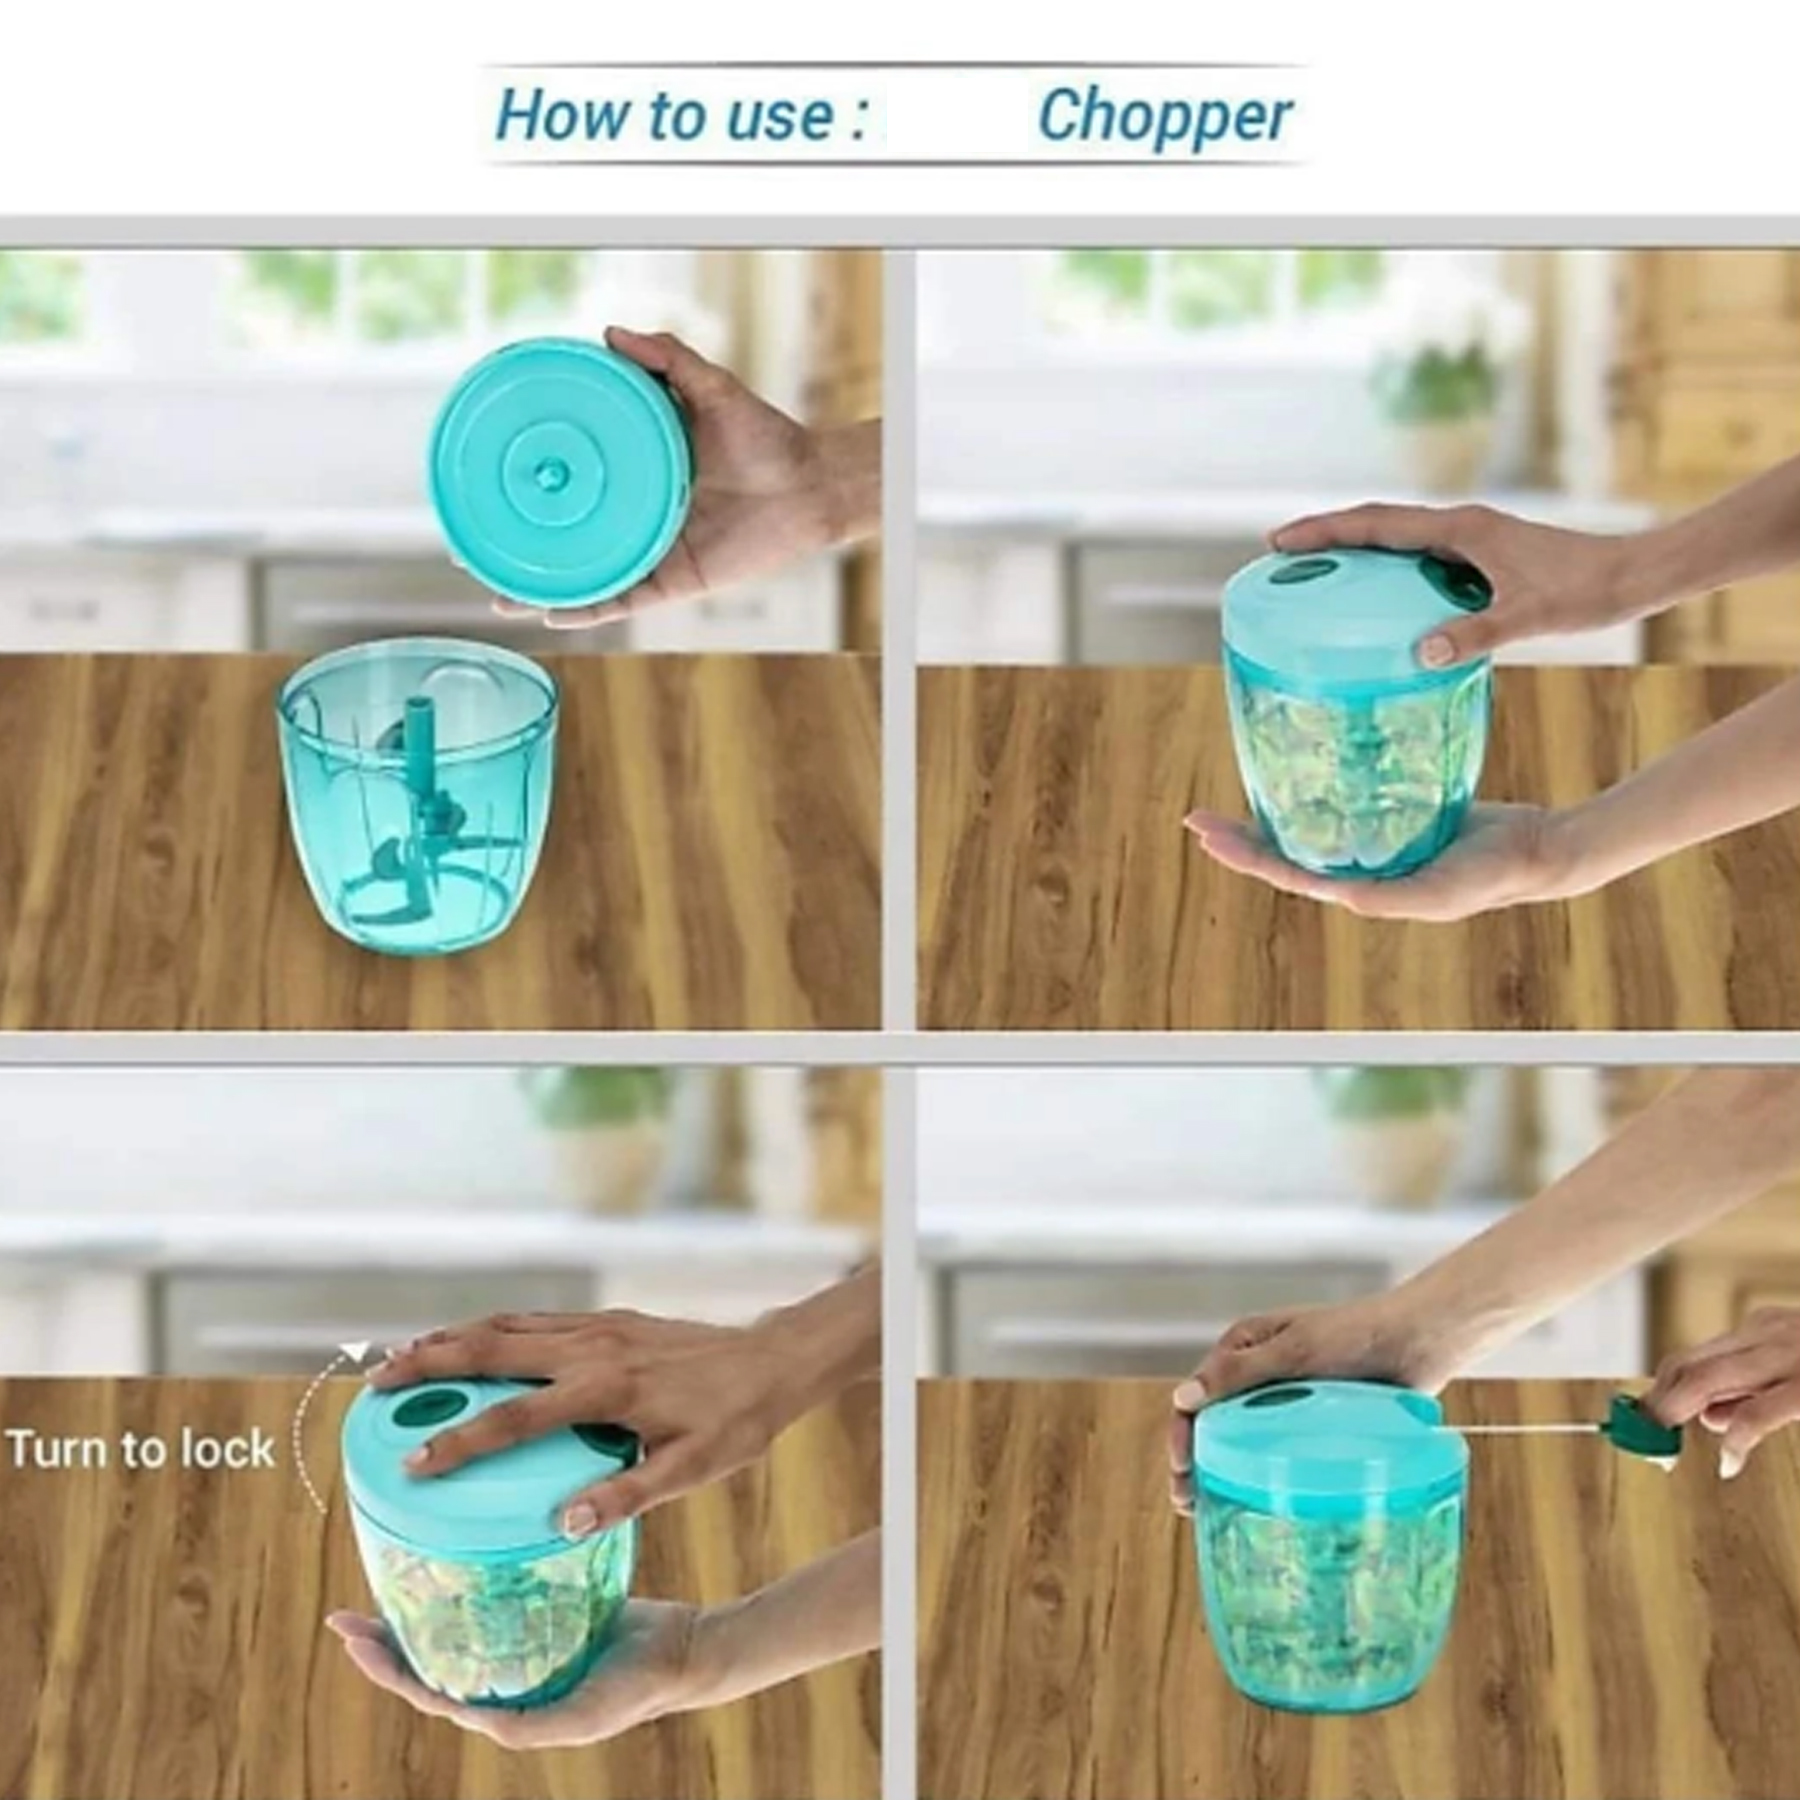 Handy Quick Cutter Vegetable Smoothy Chopper for Kitchen, 5 Steel Blade, (650 ml) Pull String